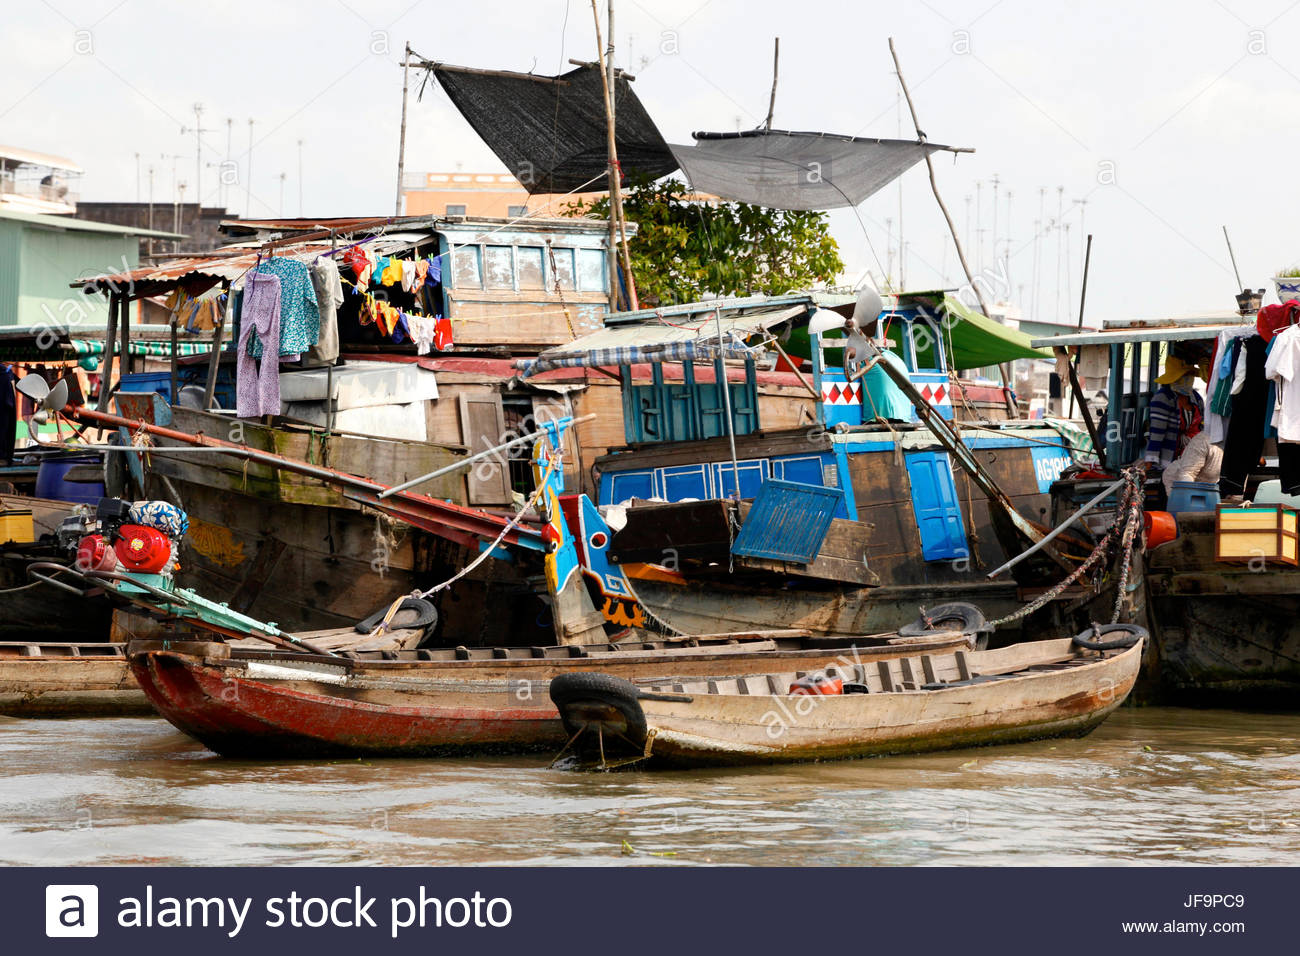 Boats and overwater homes along the Mekong River. - Stock Image